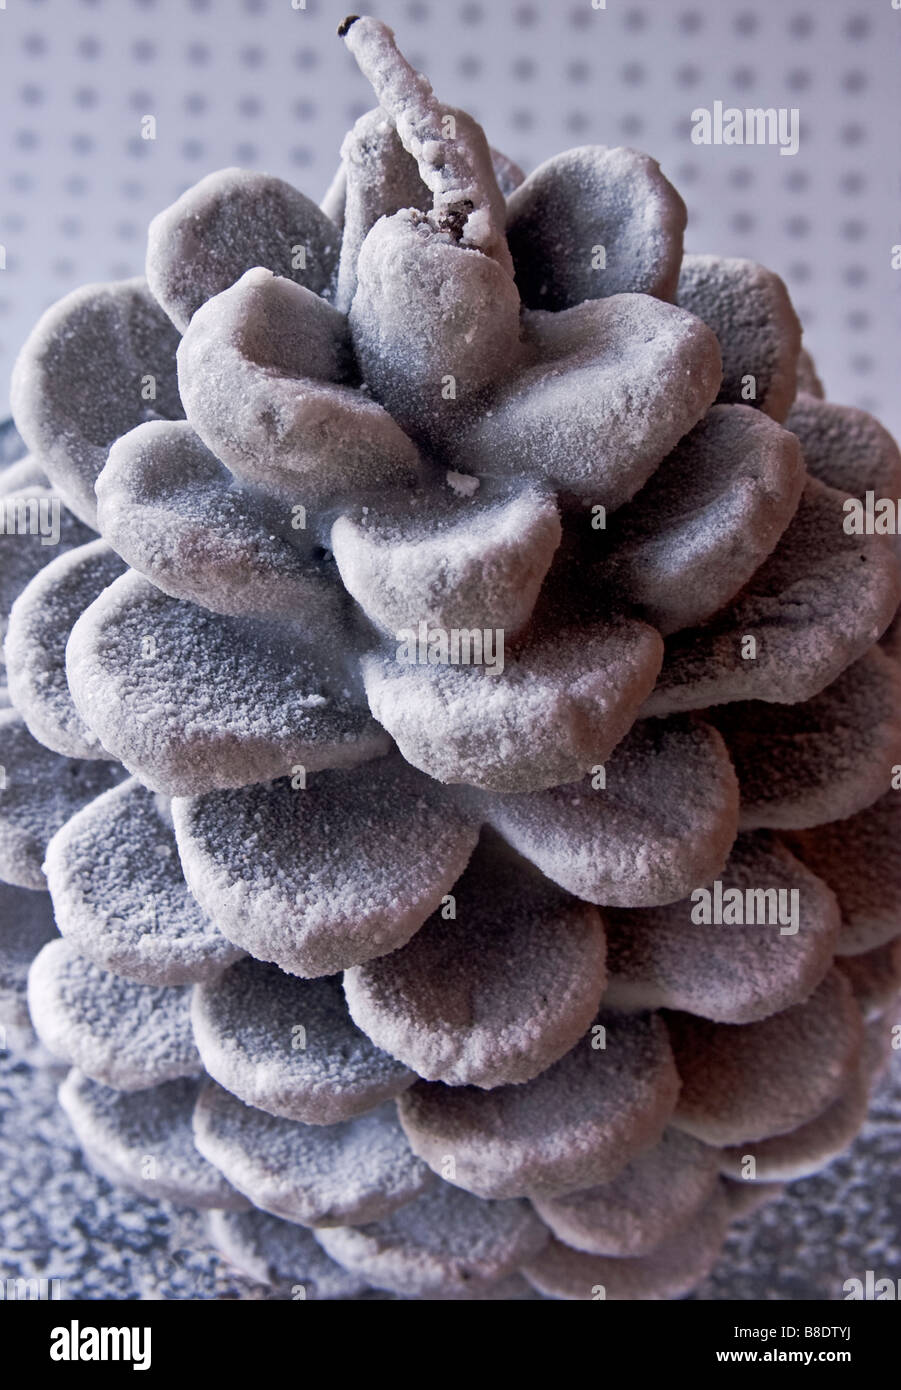 Closeup of a Christams candle in the shape of a pine cone - Stock Image